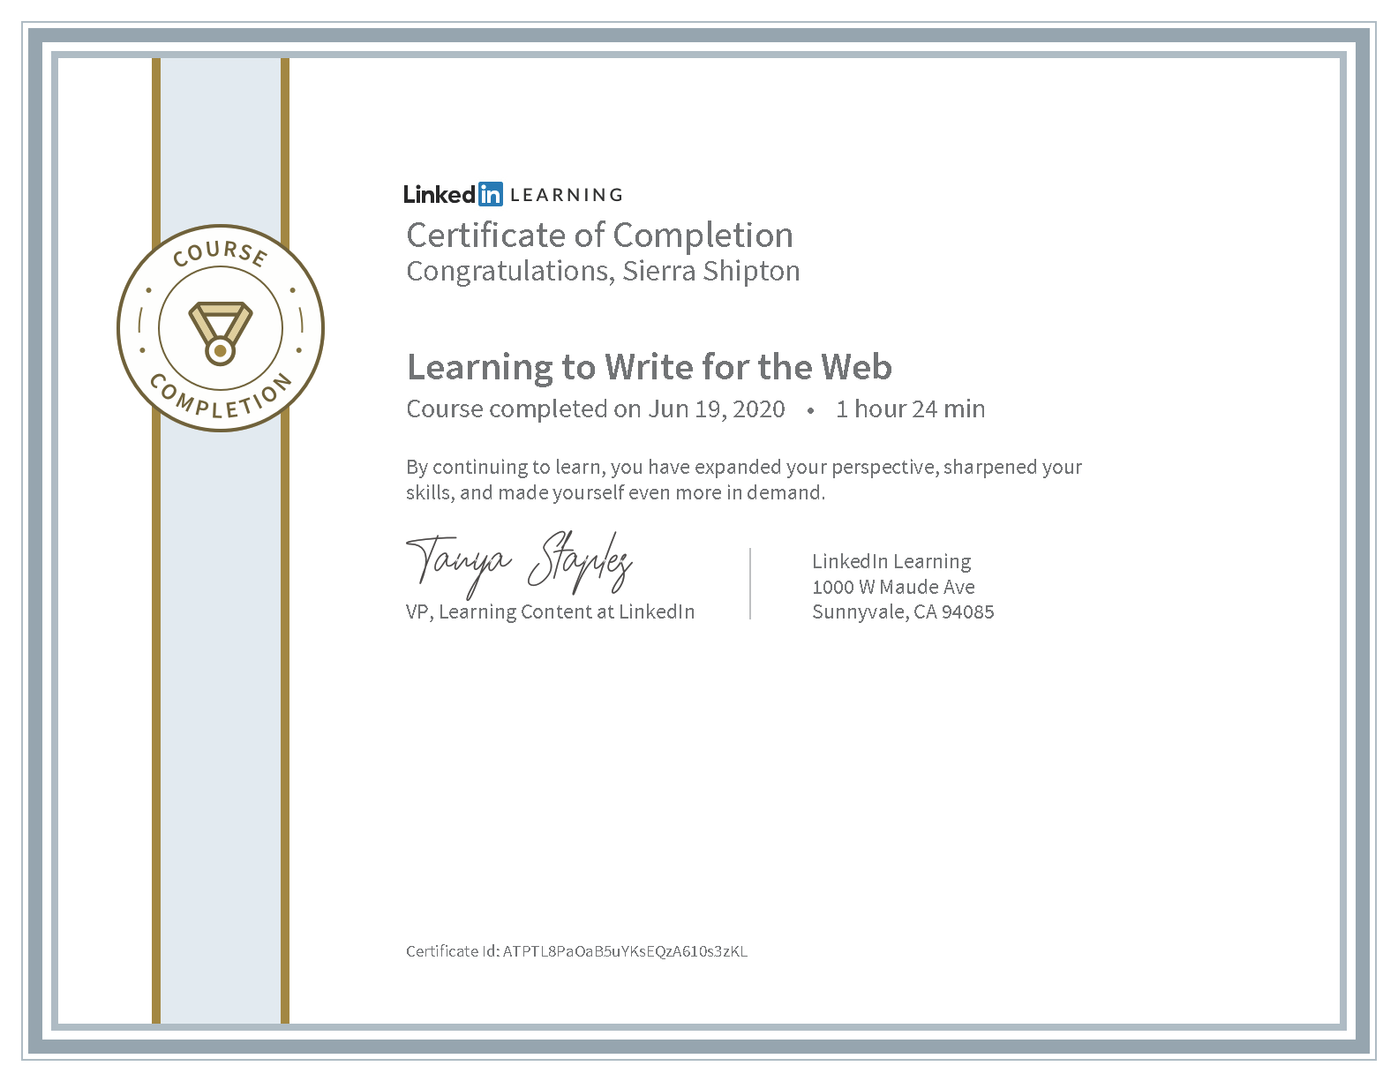 """LinkedIn Learning """"Learning to Write for the Web"""" Certificate"""